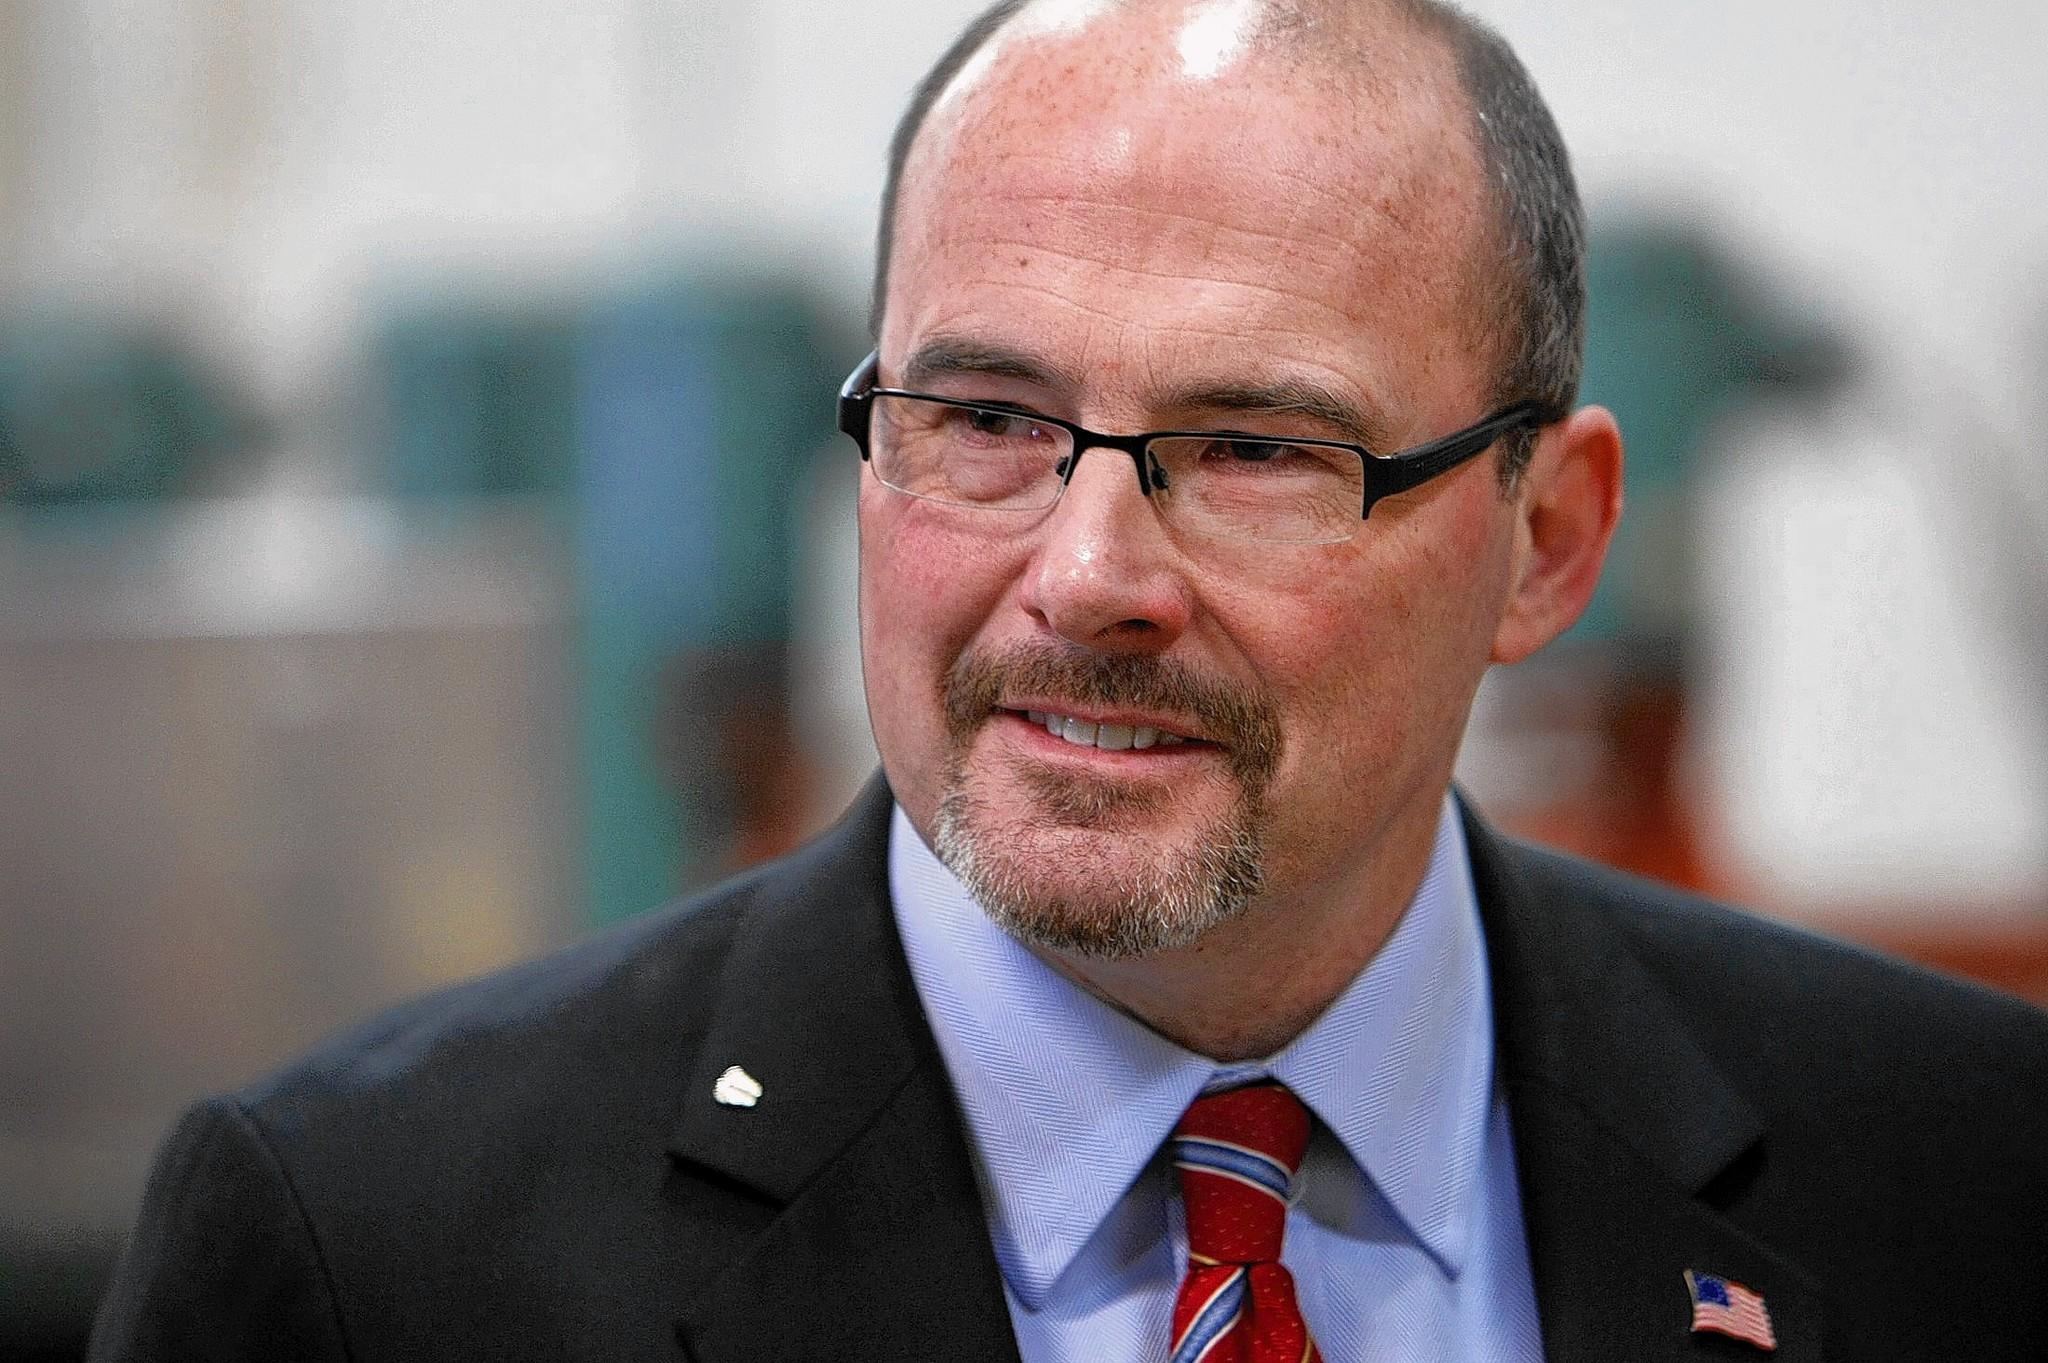 Assemblyman Tim Donnelly is seeking the Republican nomination for governor. In 2012 he tried to carry a gun through security at Los Angeles/Ontario International Airport. He was fined $2,125 and placed on three years' probation.